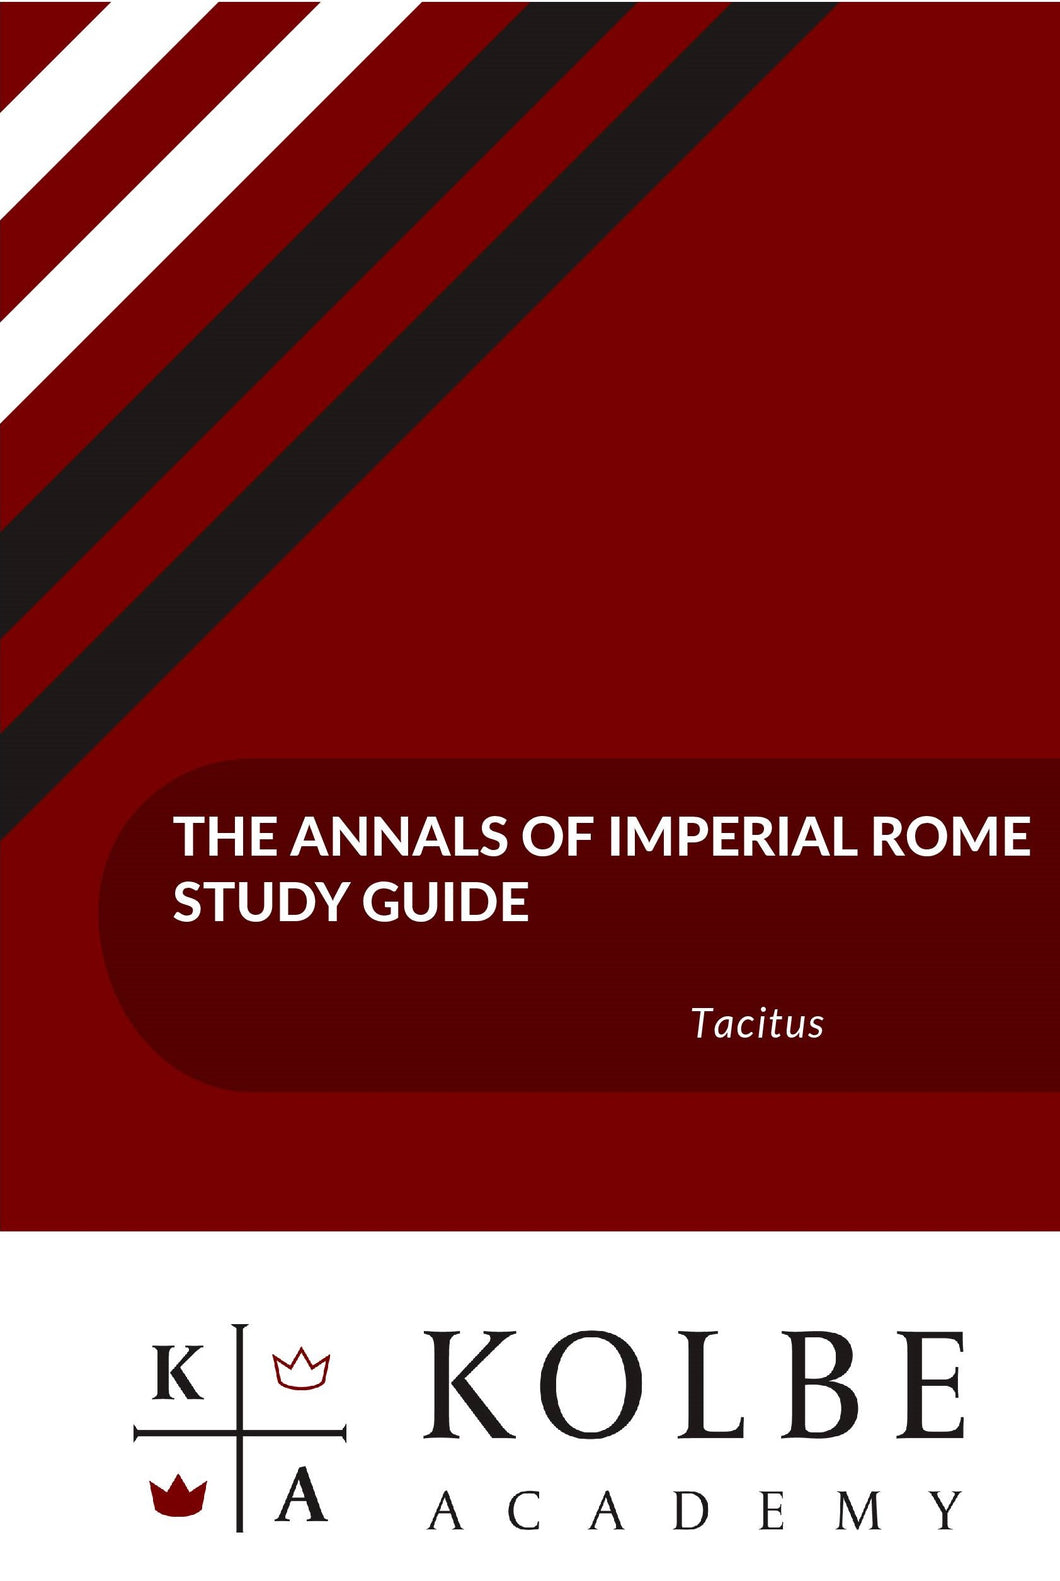 The Annals of Imperial Rome Study Guides